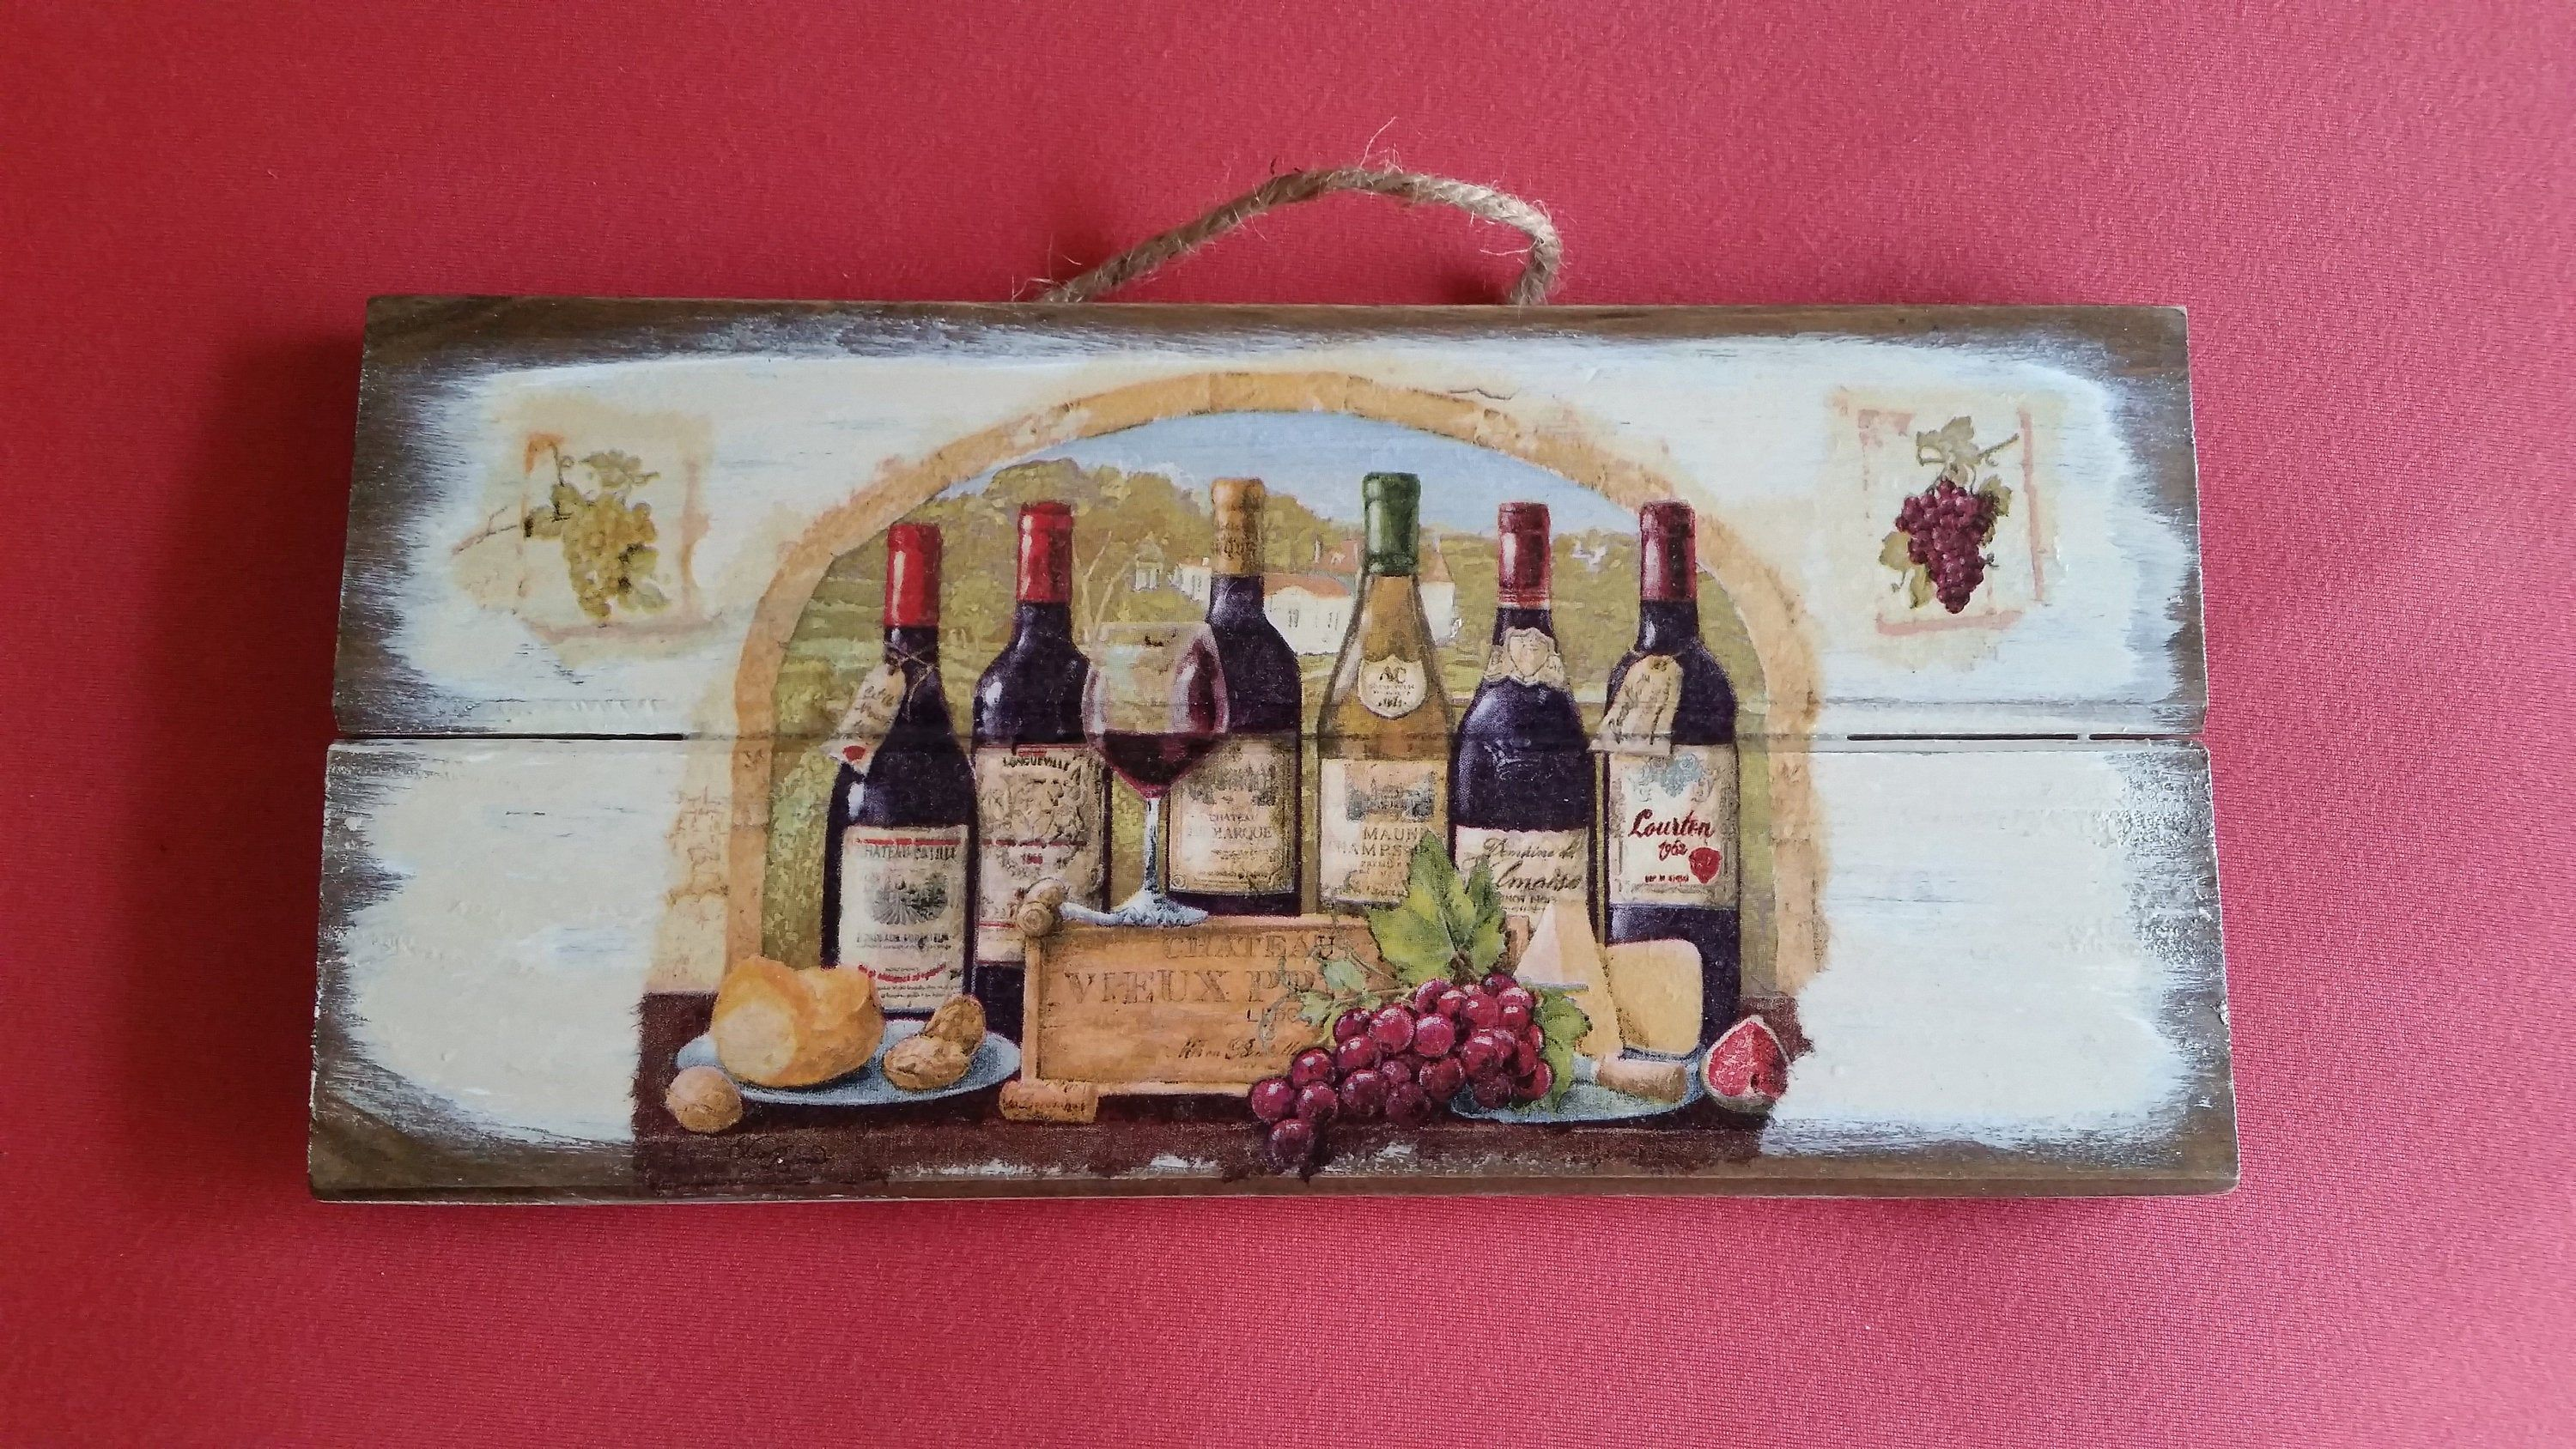 Wine Decor For Wall Wine Bar Decor Wine Lovers Gift Wine Etsy Wine Decor Bar Decor Gifts For Wine Lovers